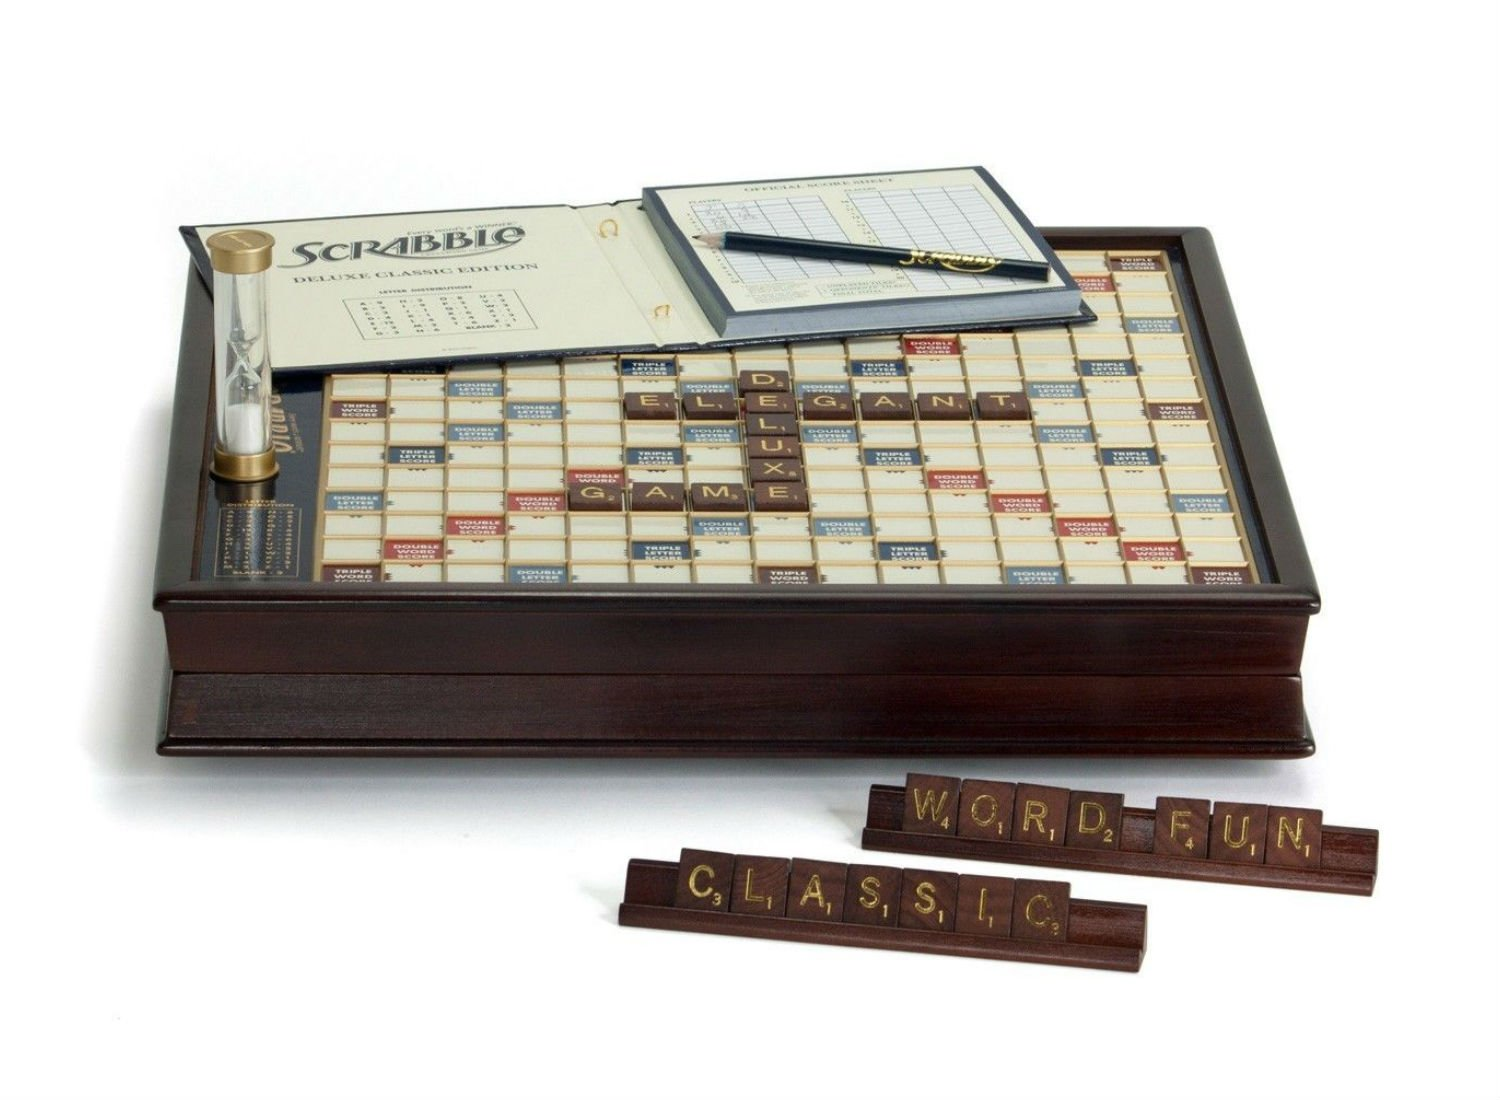 Newest Scrabble Deluxe Wooden Edition with Rotating Game Board